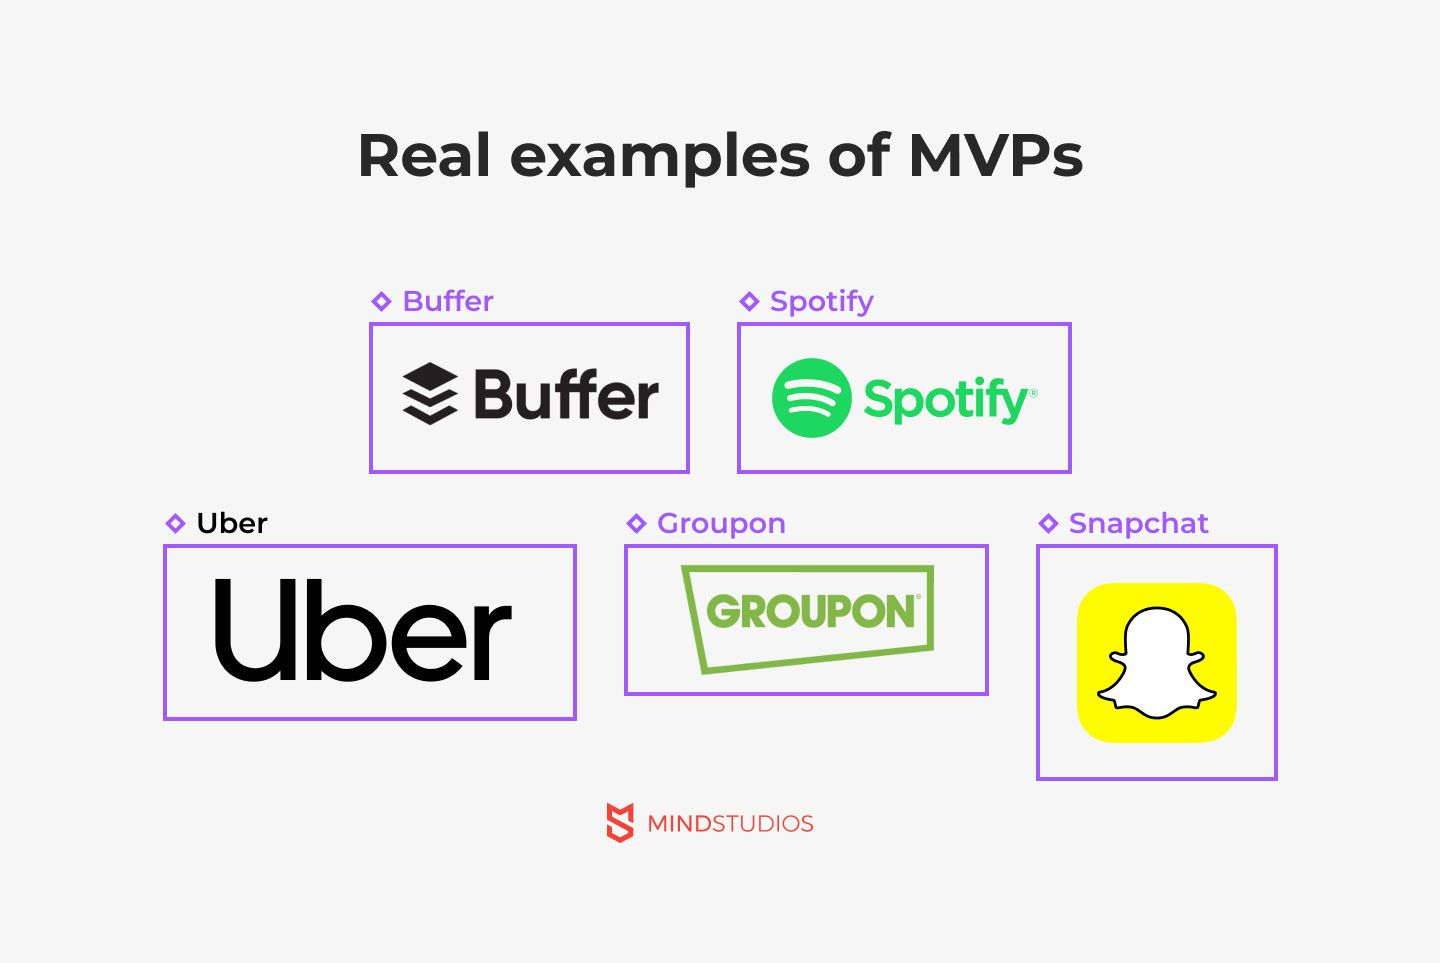 Real examples of MVPs